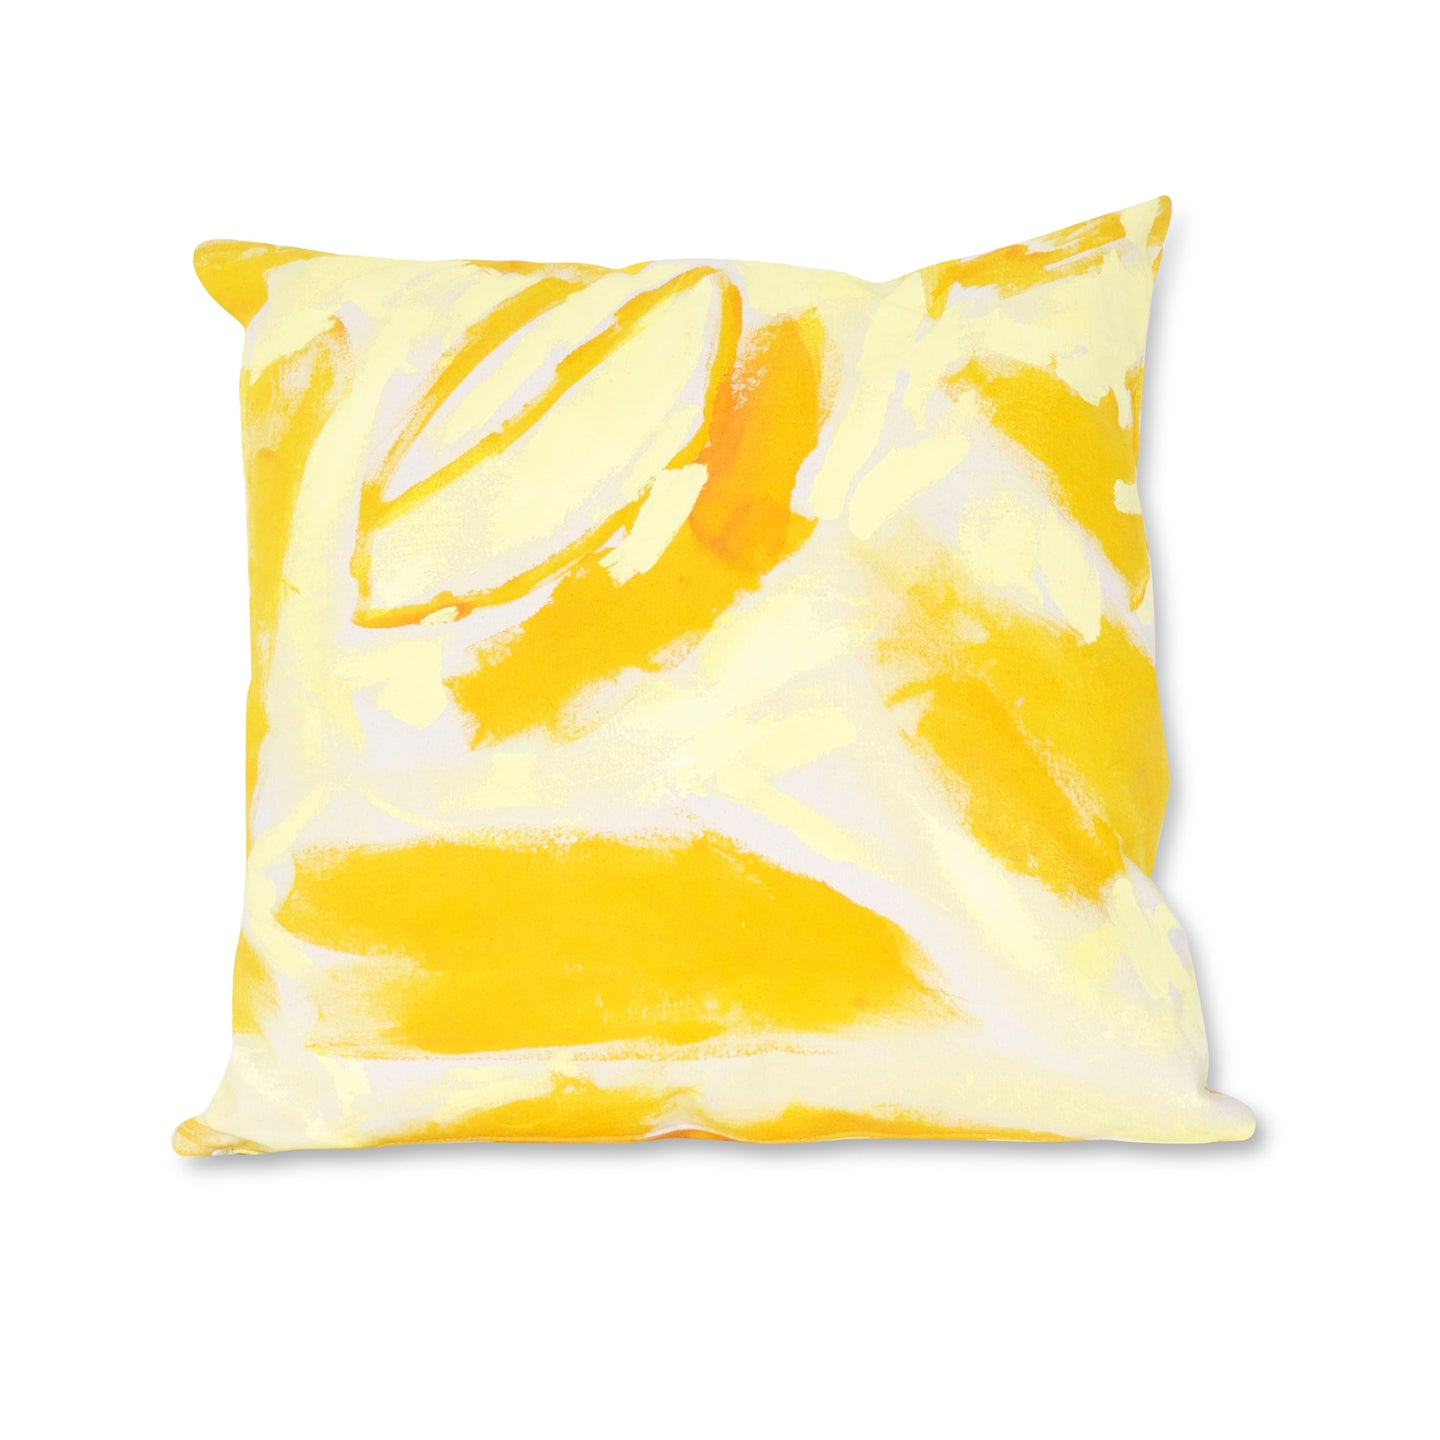 Yellow Two Hue Hand-Painted Canvas Square Pillow